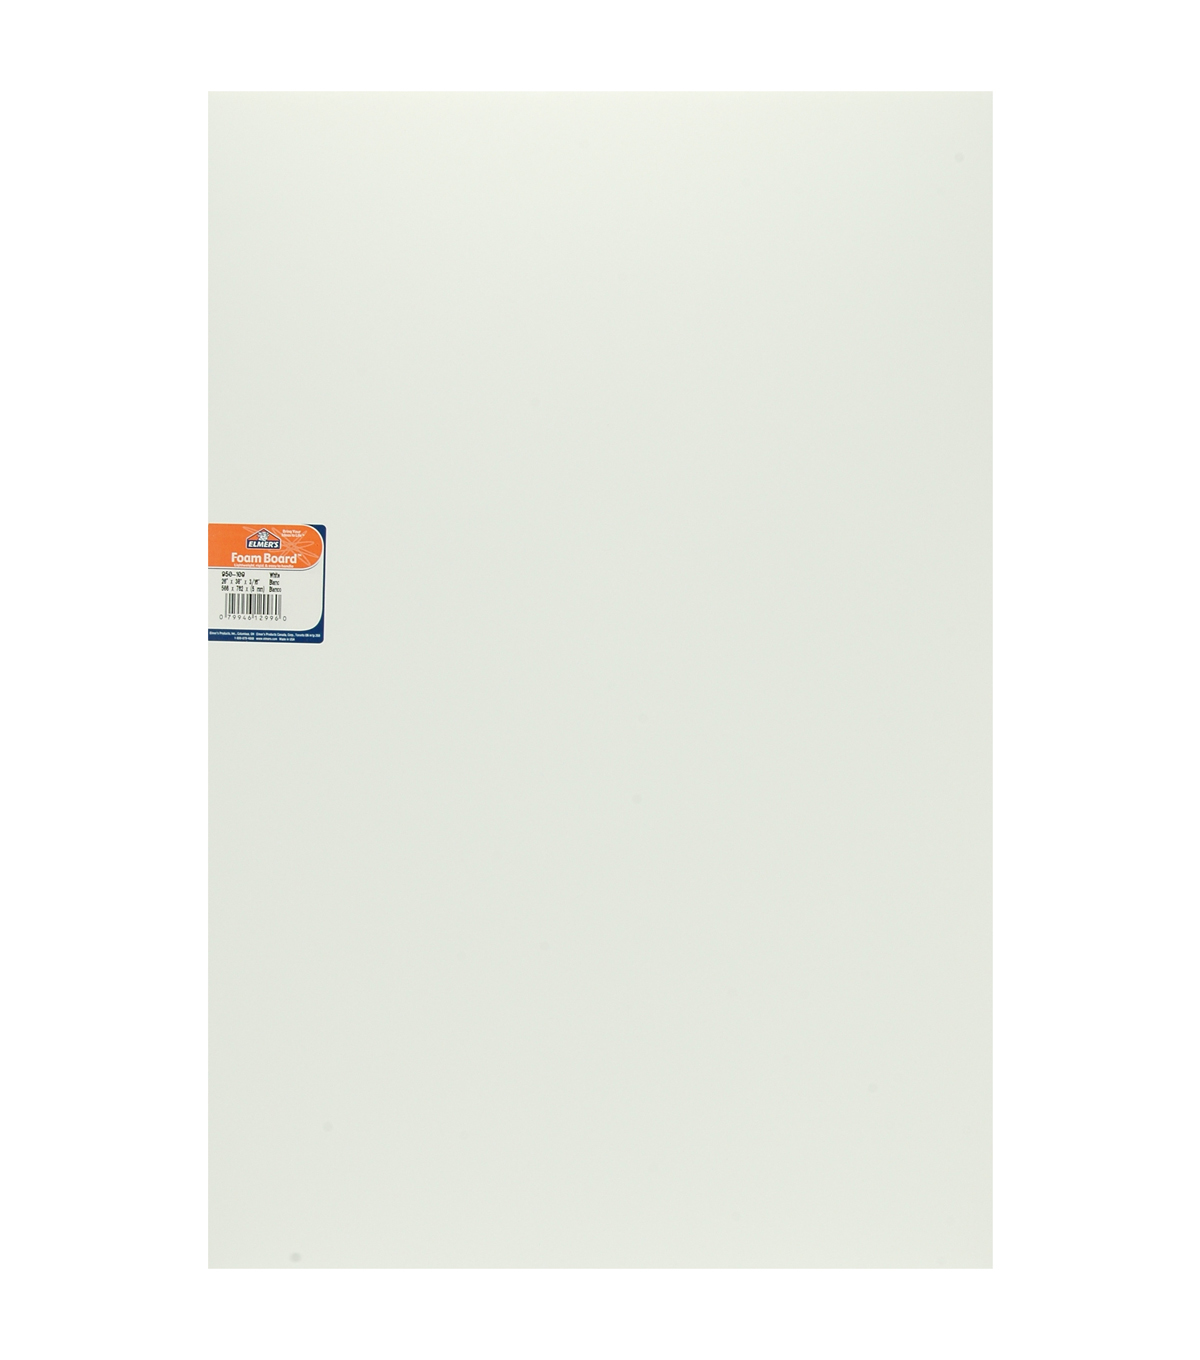 Elmer\u0027s Foam Board 3/16\u0022 Thick 20\u0022x30\u0022 (25 sheets)